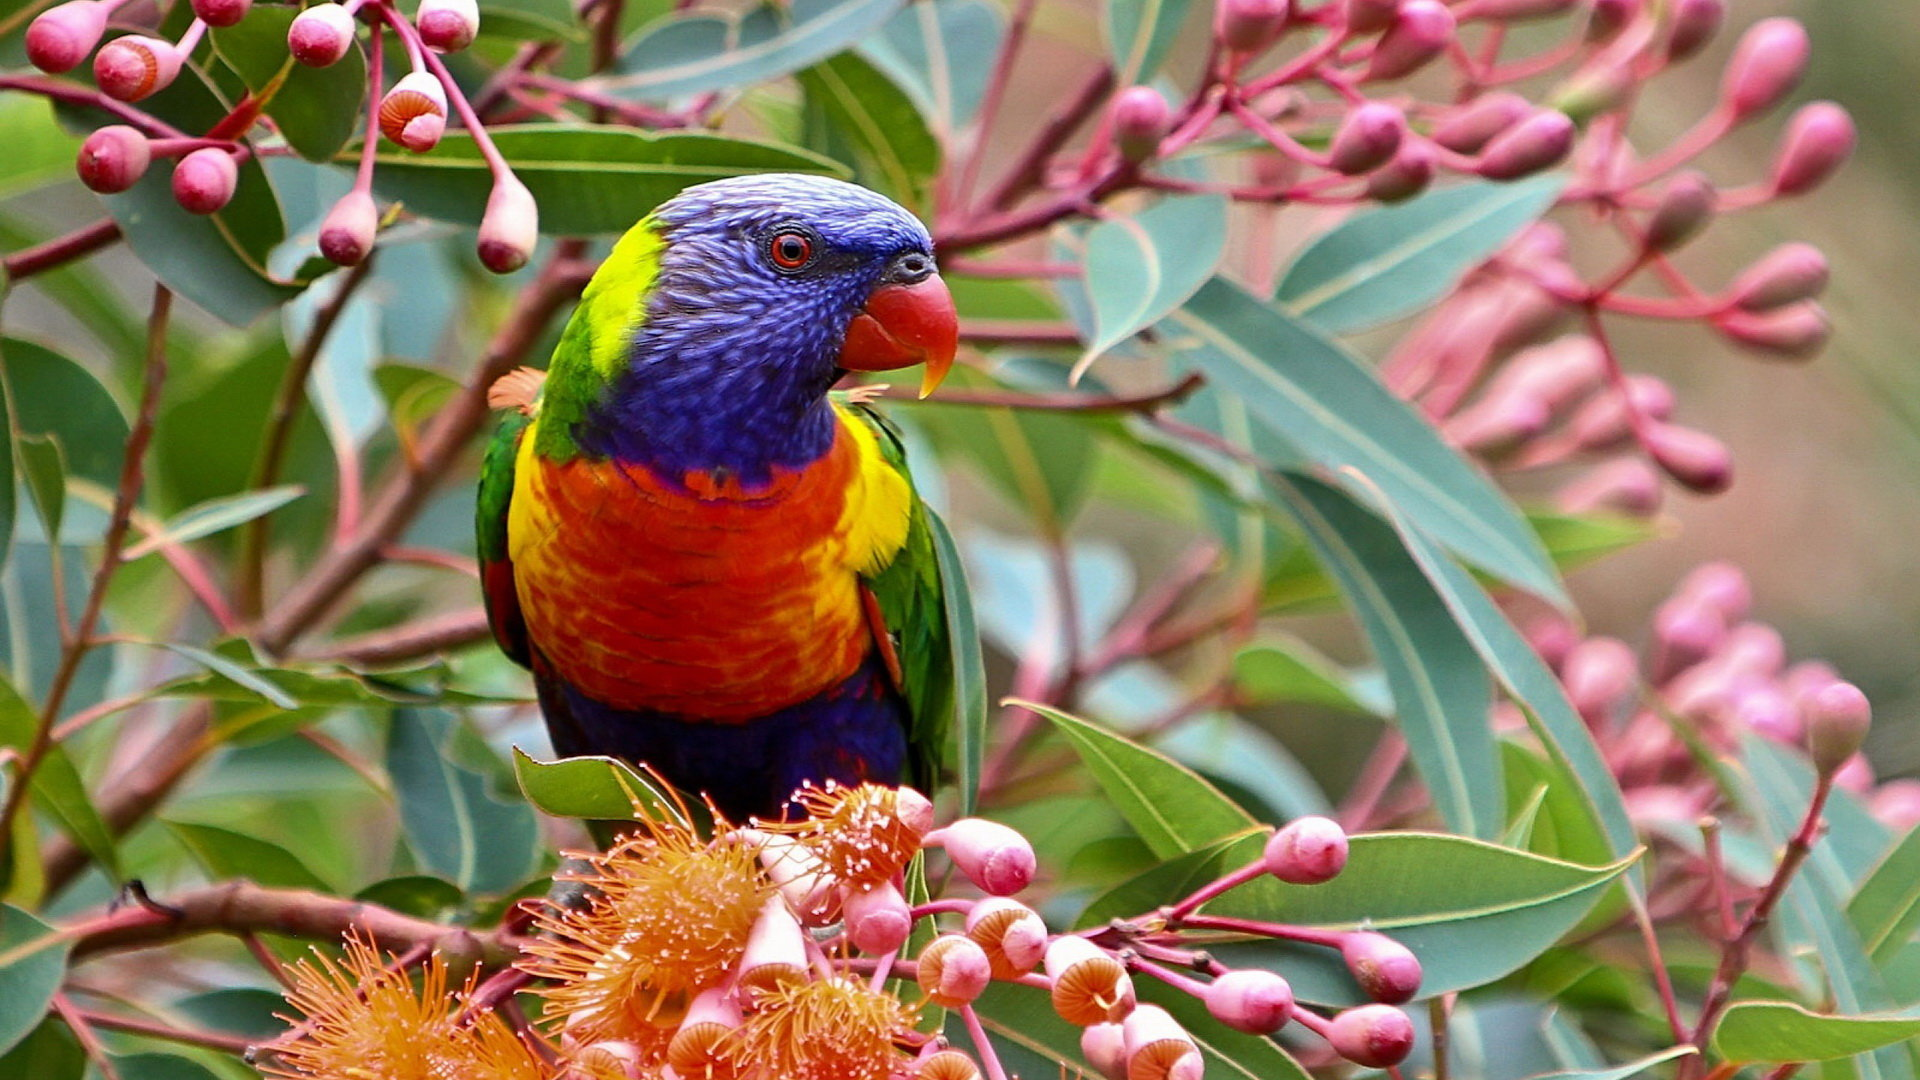 High resolution Rainbow Lorikeet full hd background ID:10174 for PC